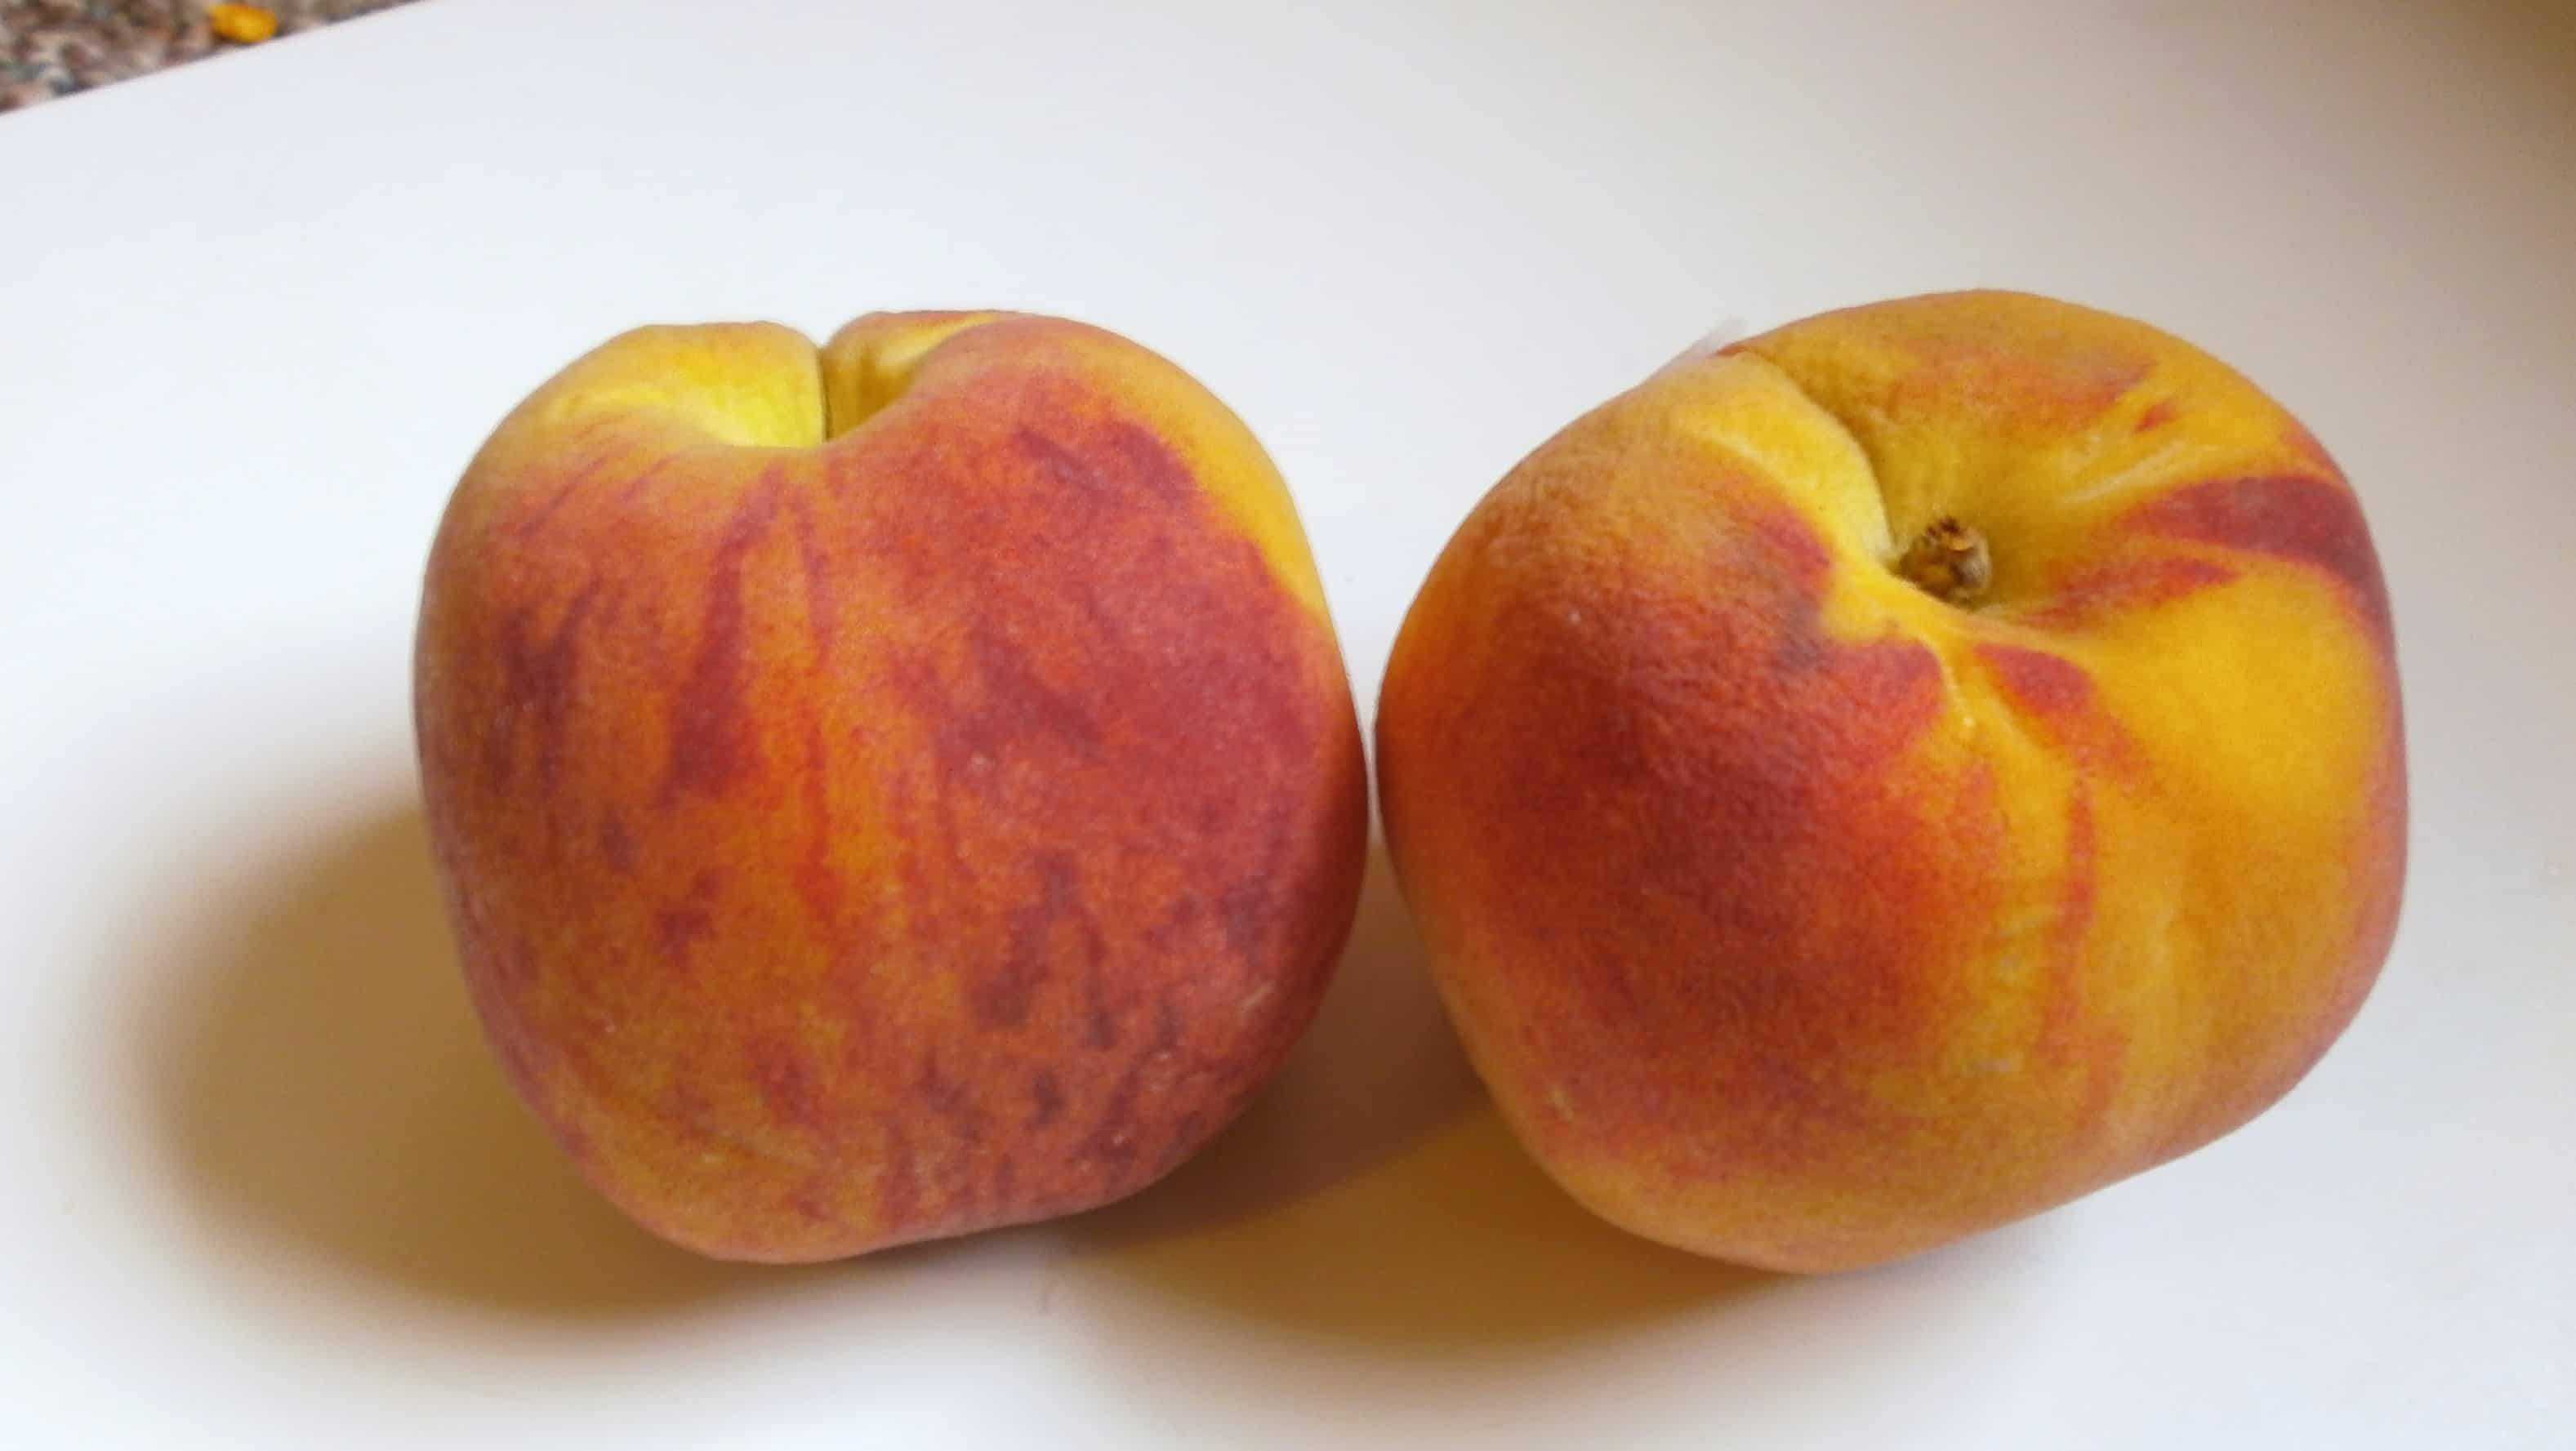 my first california peach of the year - amber crest - eat like no